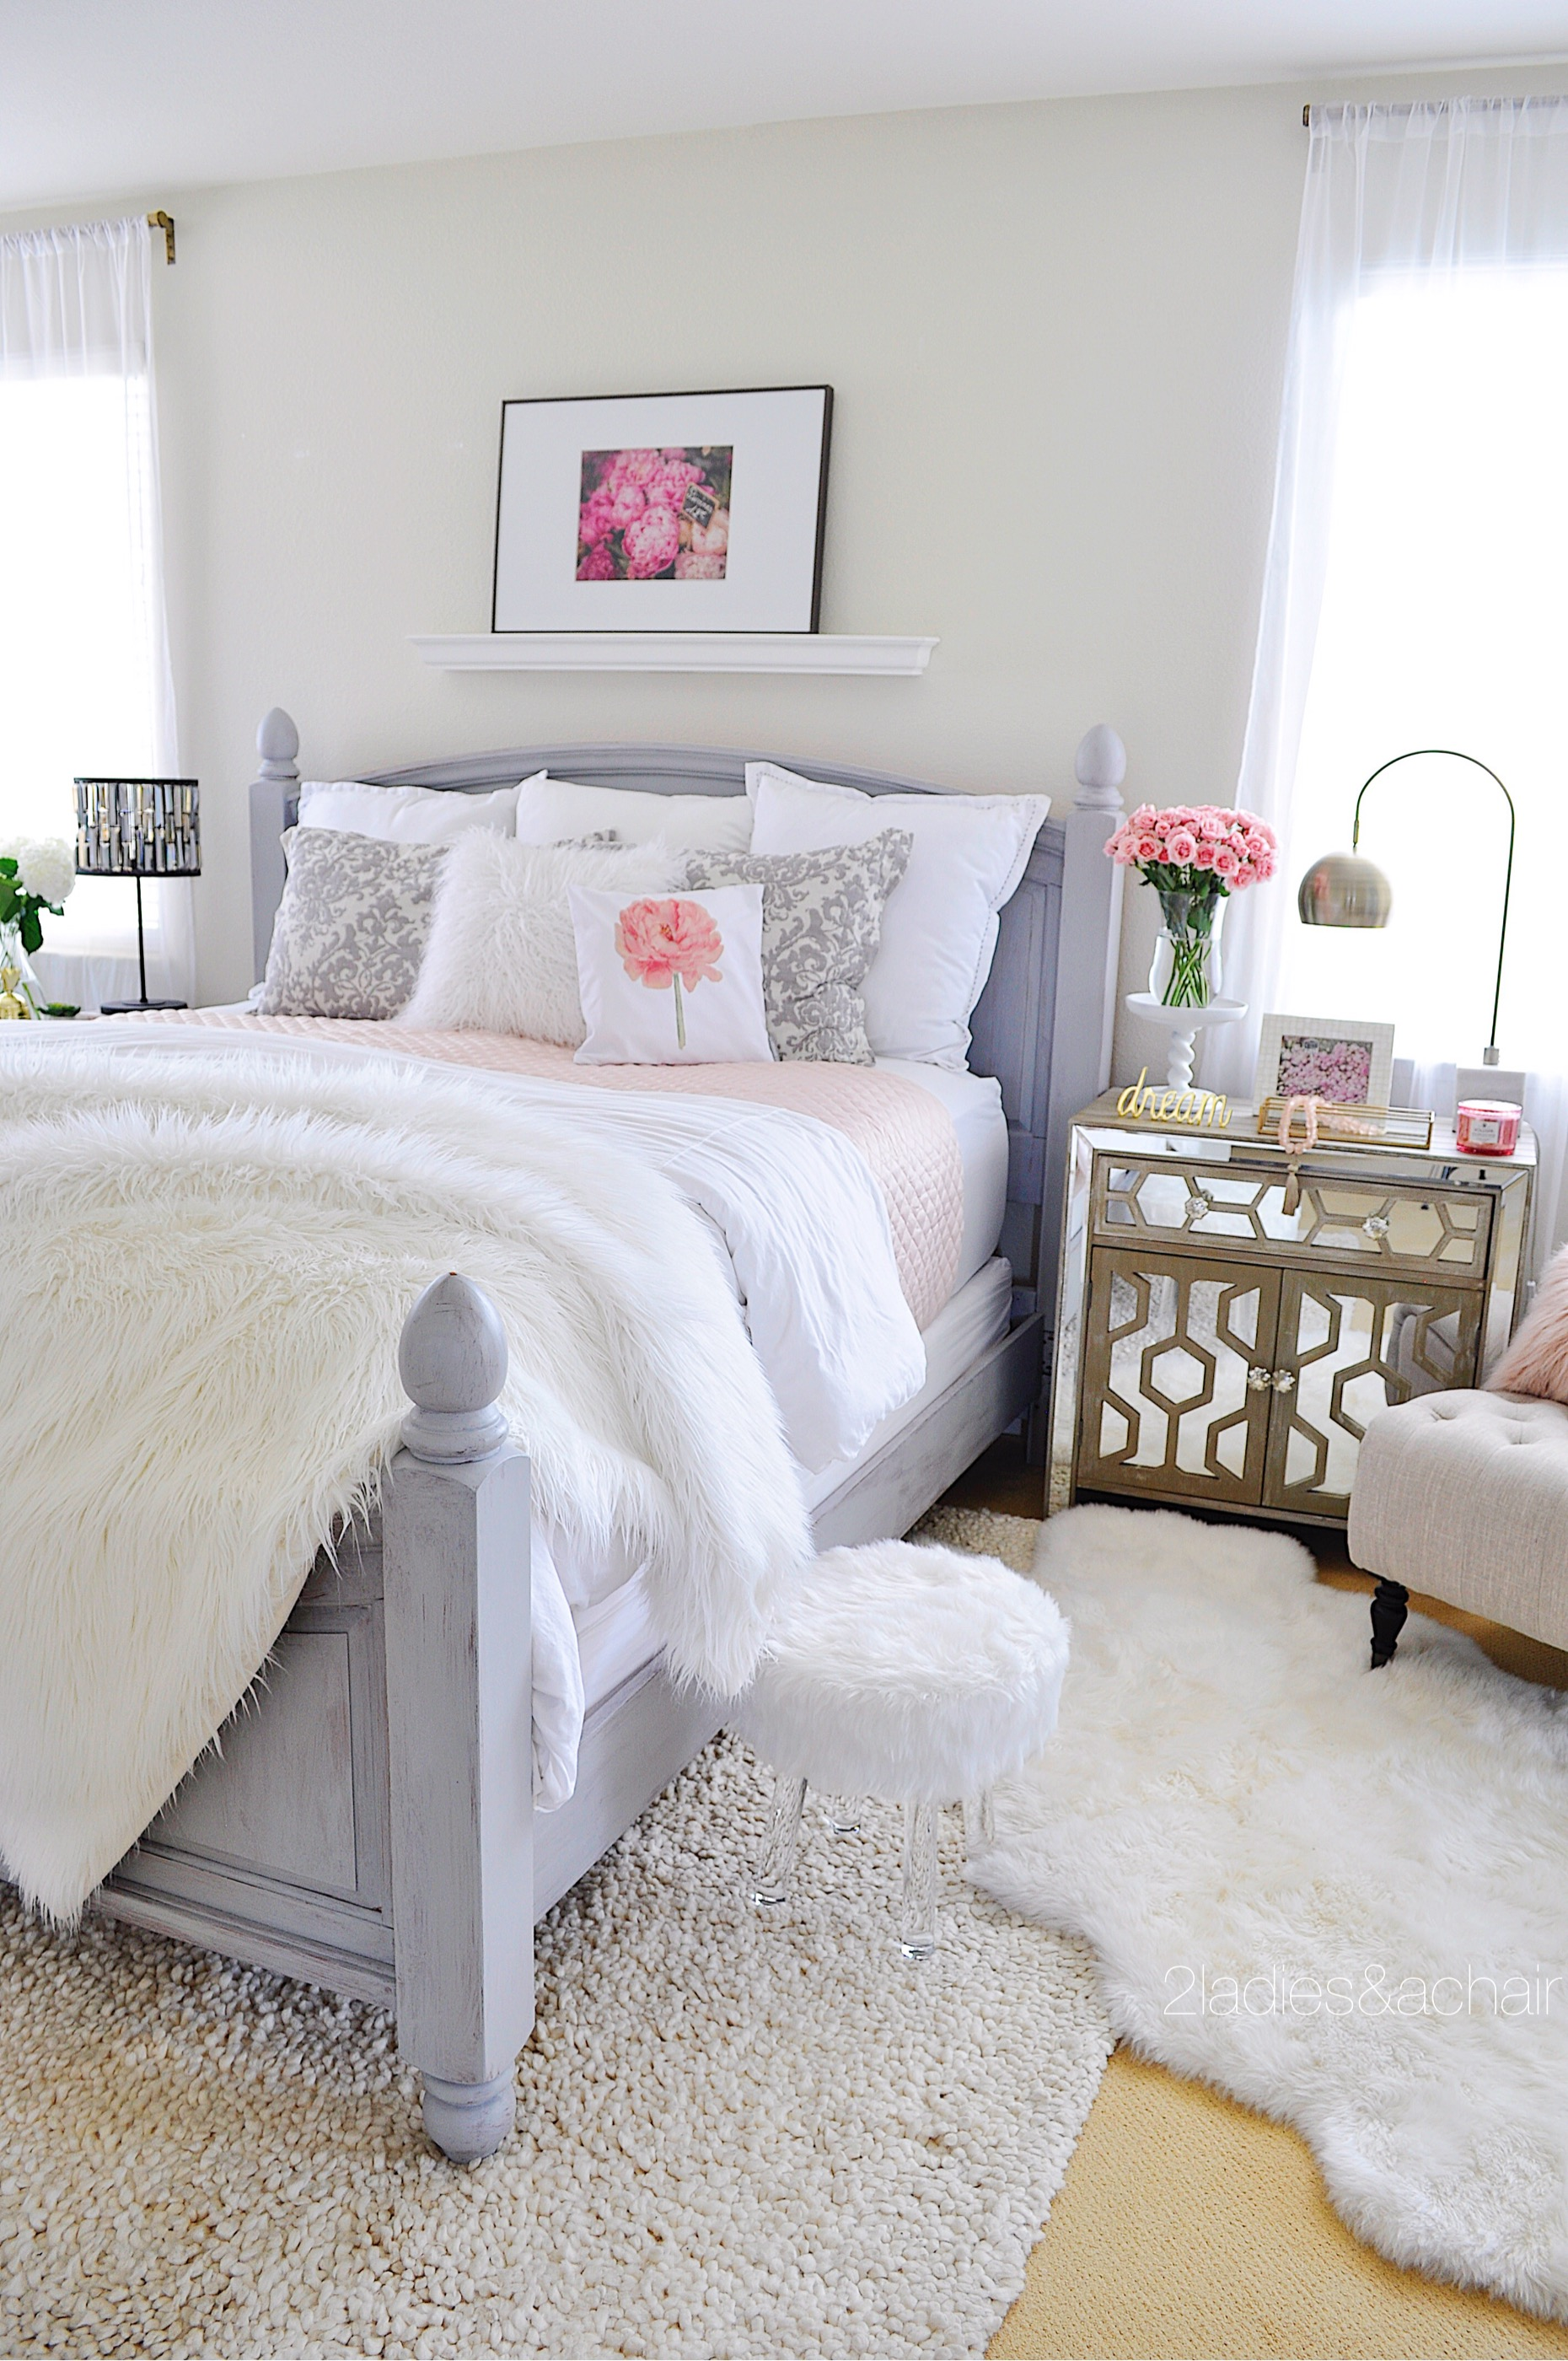 bedroom decorating ideas IMG_7659.JPG